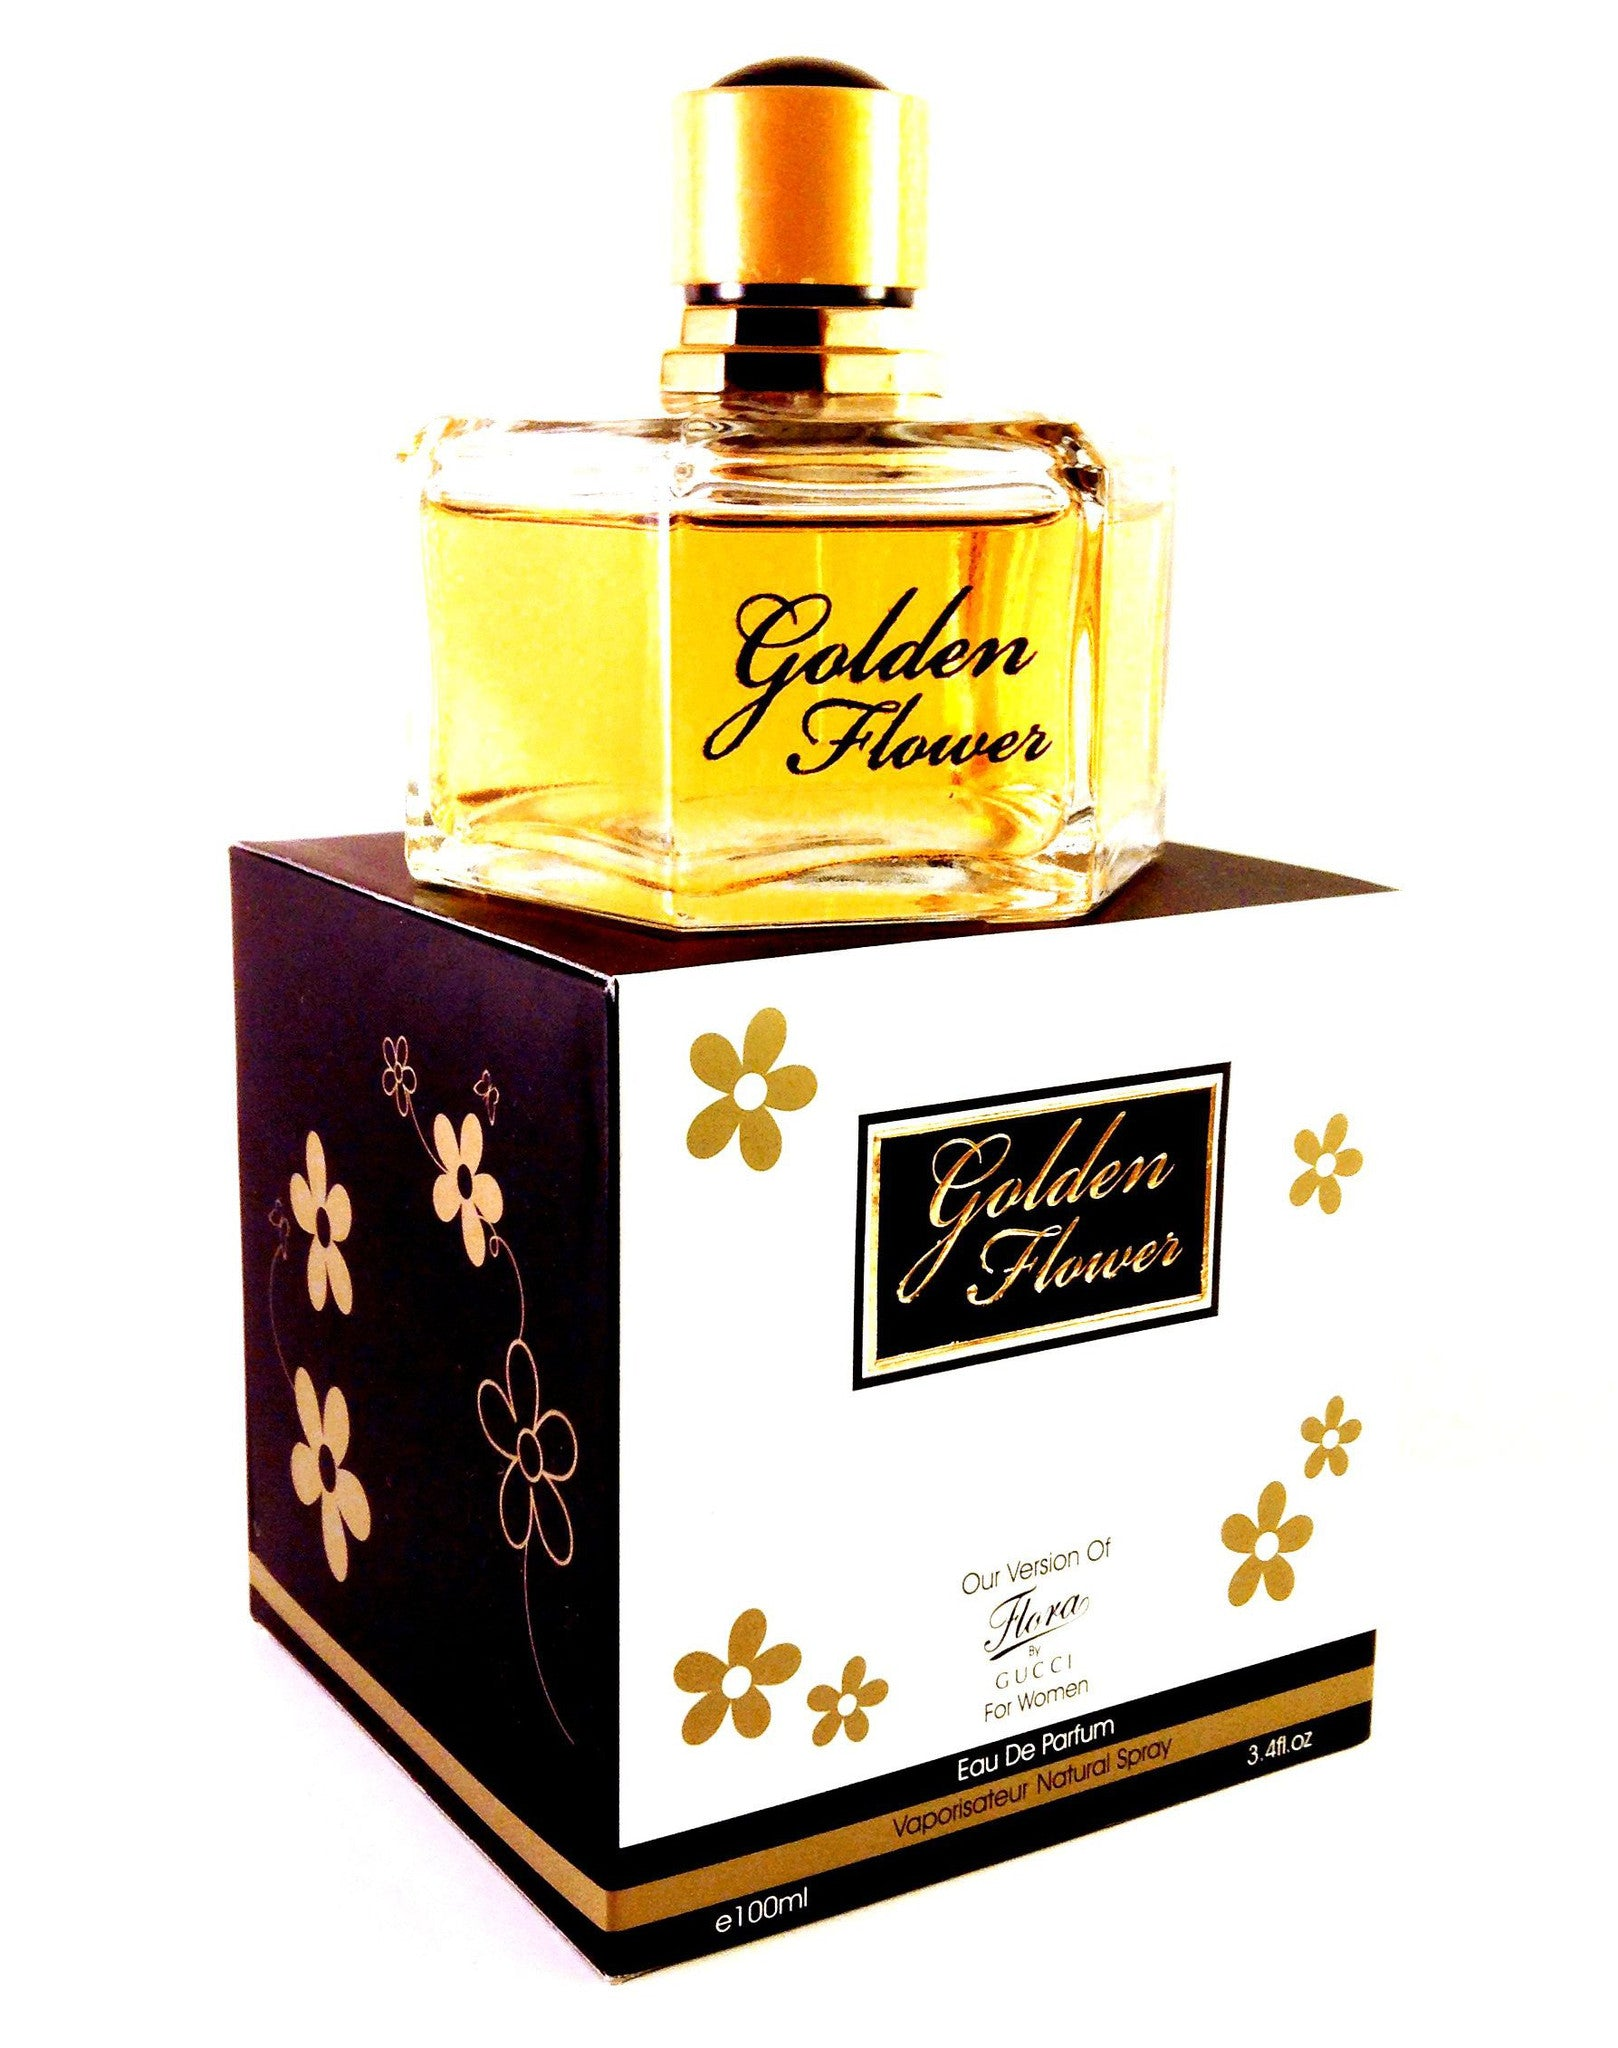 GOLDEN FLOWER - Church Suits For Less